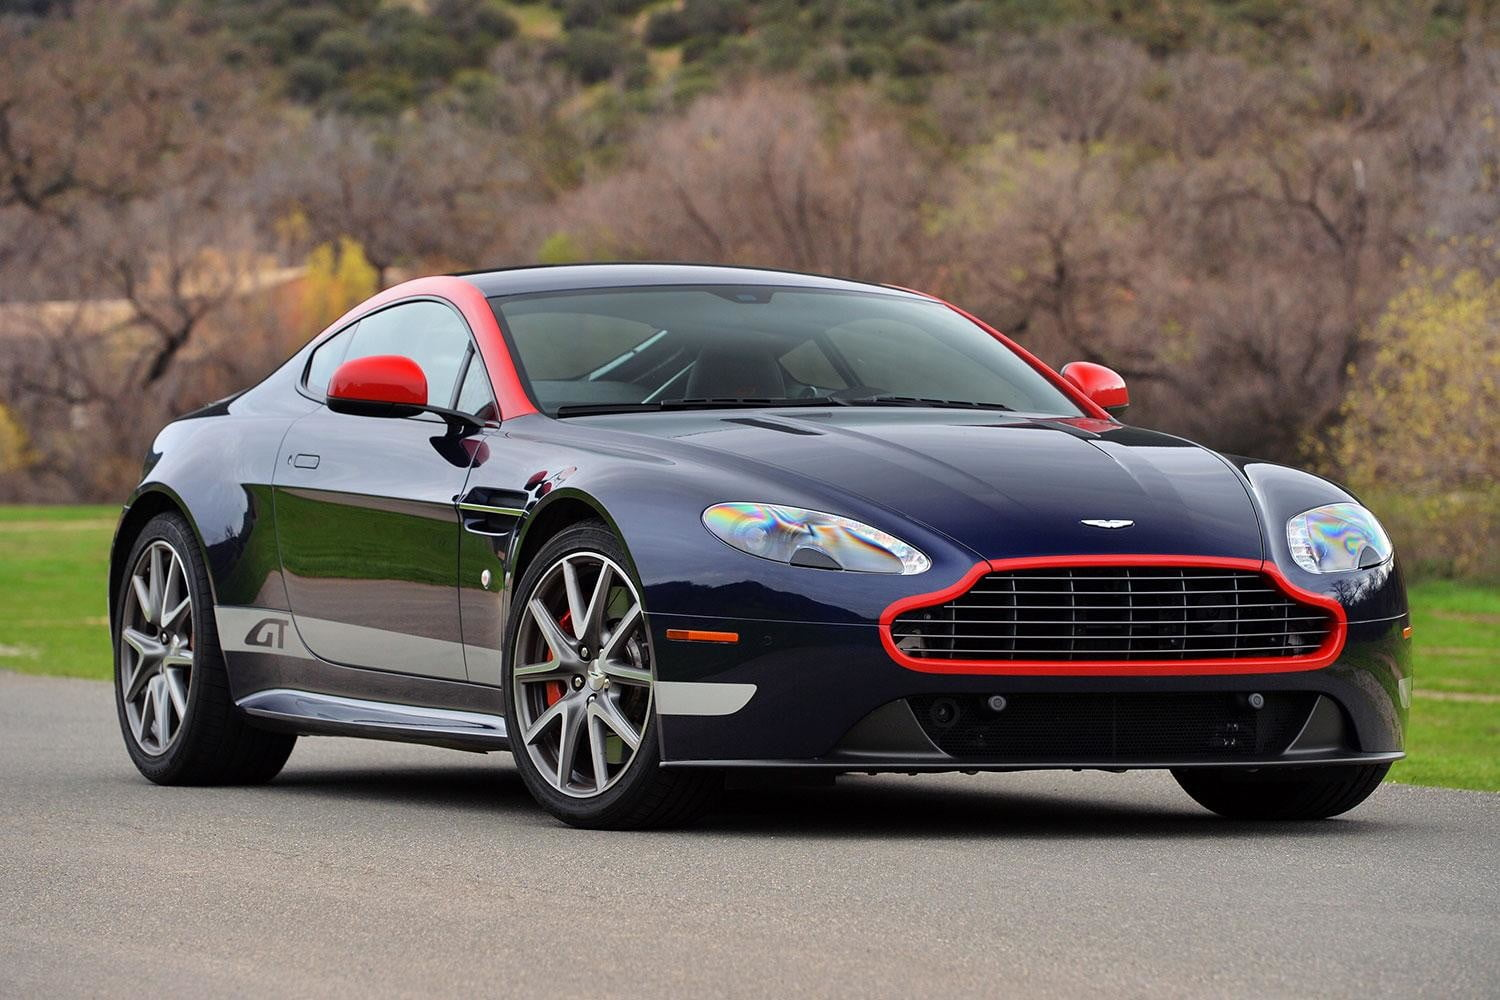 Aston Martin V Vantage GT First Drive Digital Trends - Aston martin gt